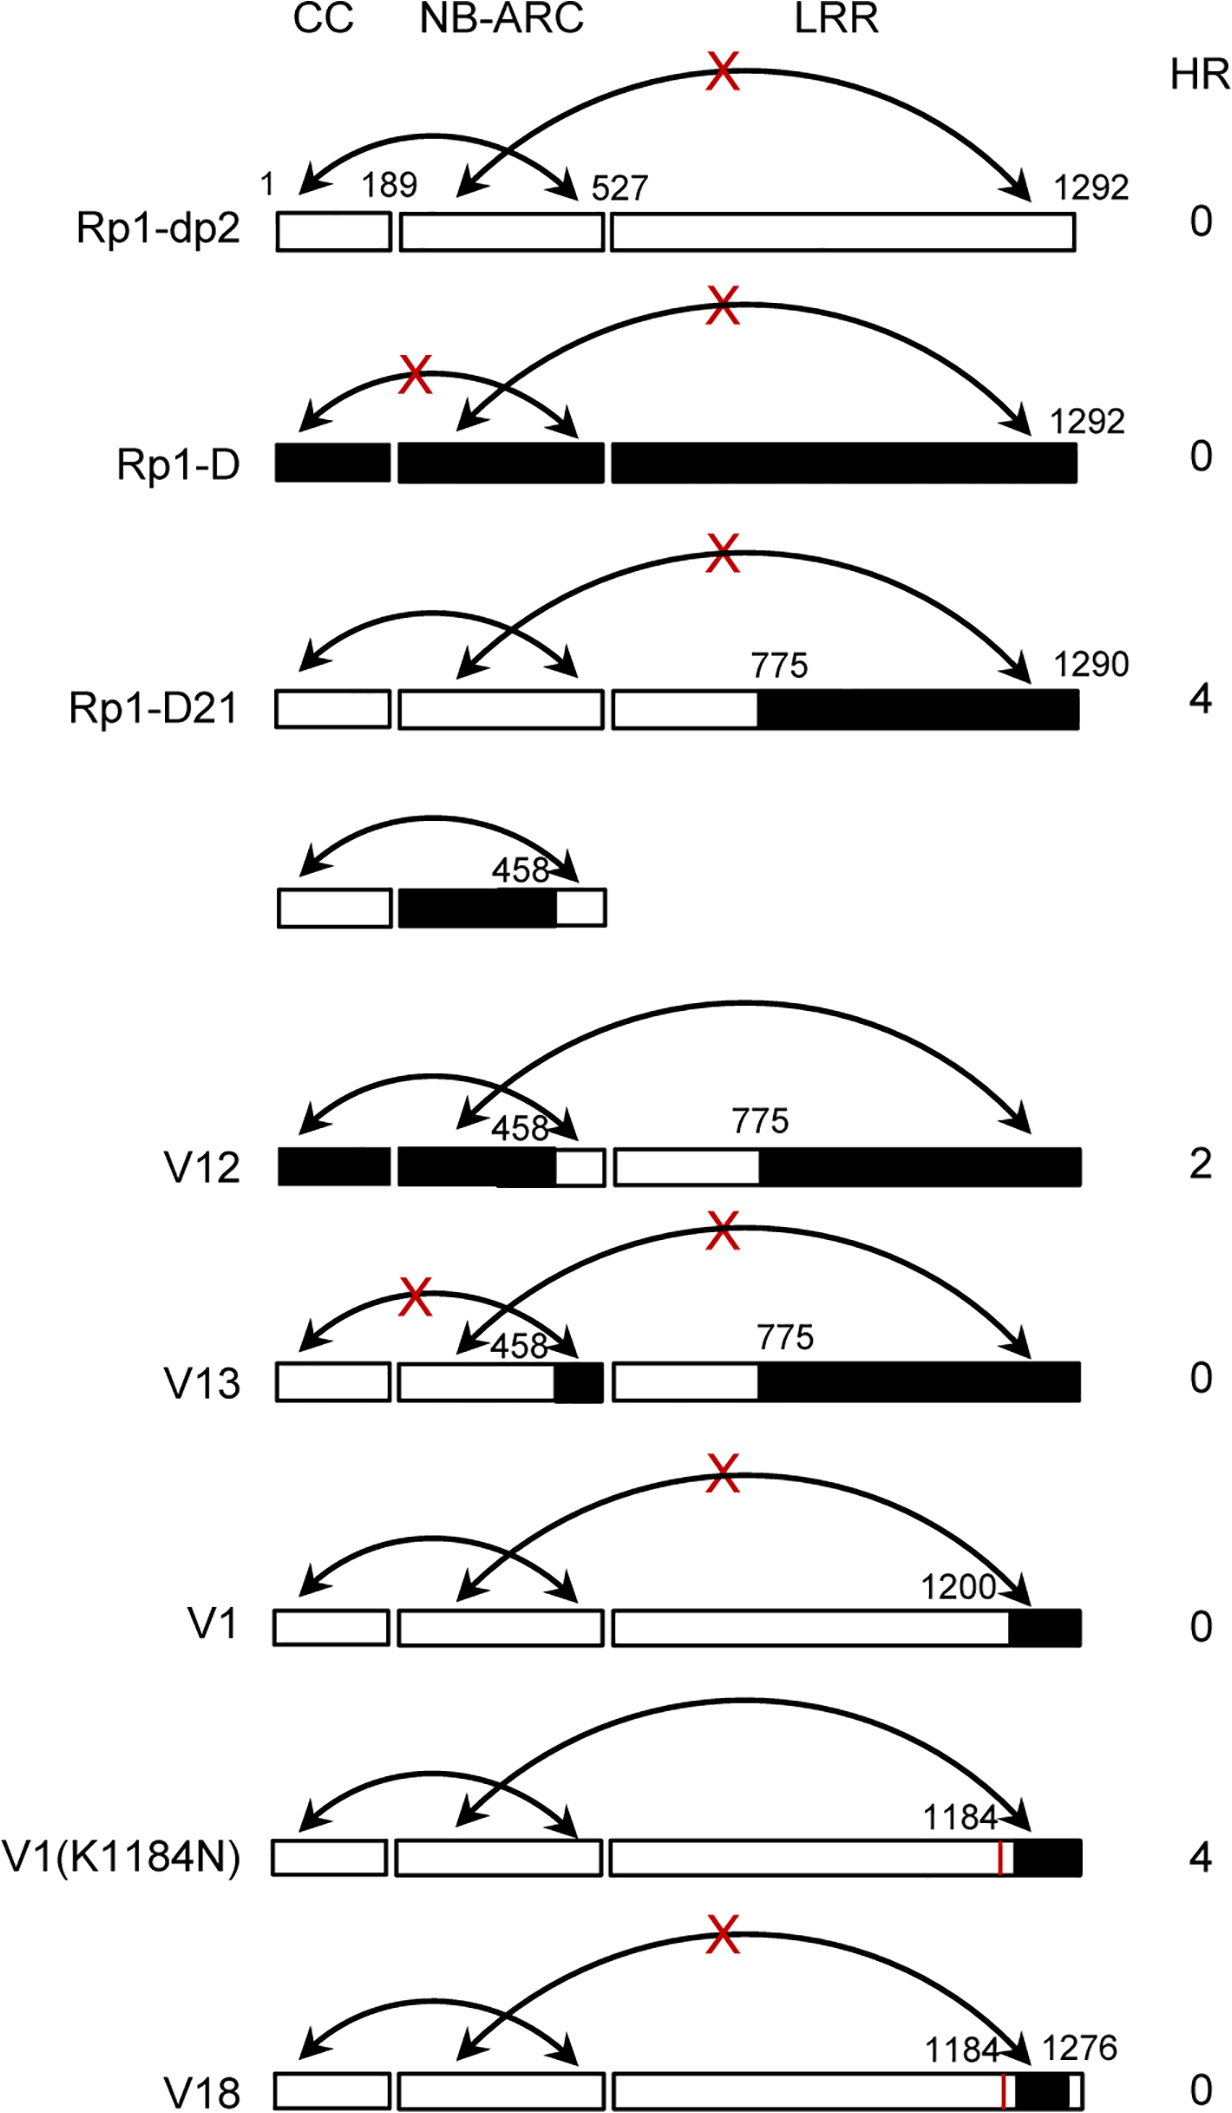 Schematic diagram of the intra-molecular interactions and HR phenotype of the constructs indicated, summarizing the data shown in <em class=&quot;ref&quot;>S7 Fig</em>. in which the various domains were co-expressed and co-immunoprecipitated <i>in trans</i>.